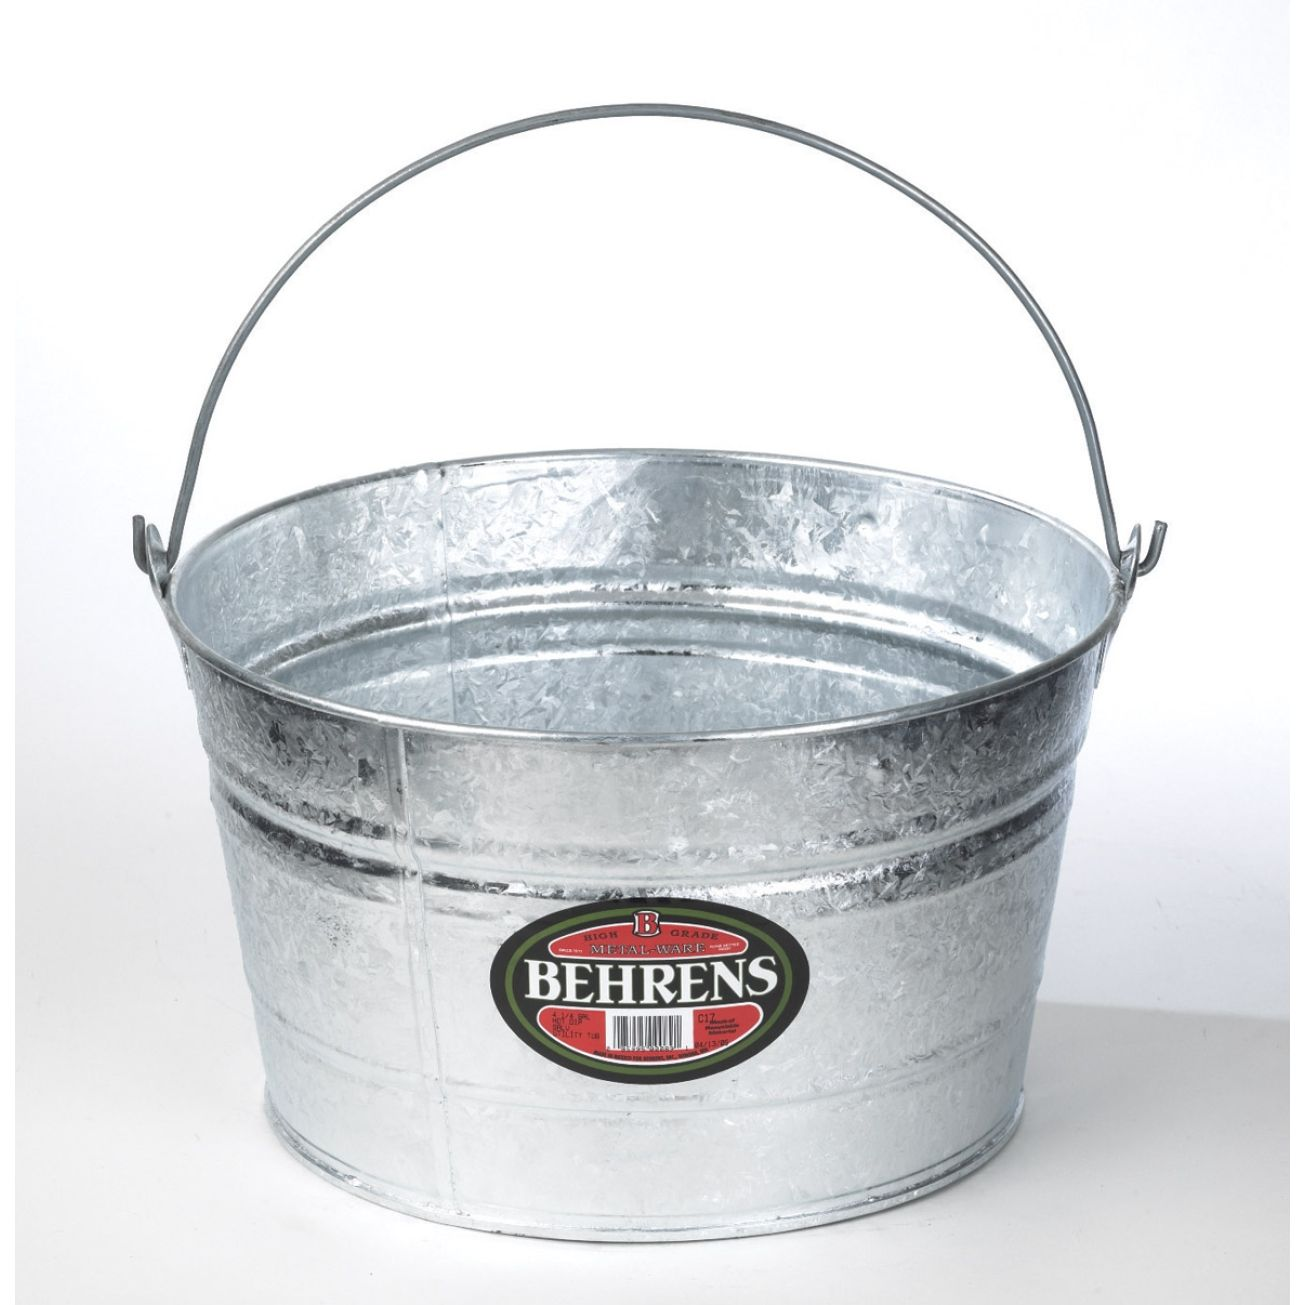 Behrens All Purpose 4 1 2 Gallon Round Tub C17 Outdoor Trash Cans Lids Carts Ace Hardware Behrens Outdoor Trash Cans Steel Tub